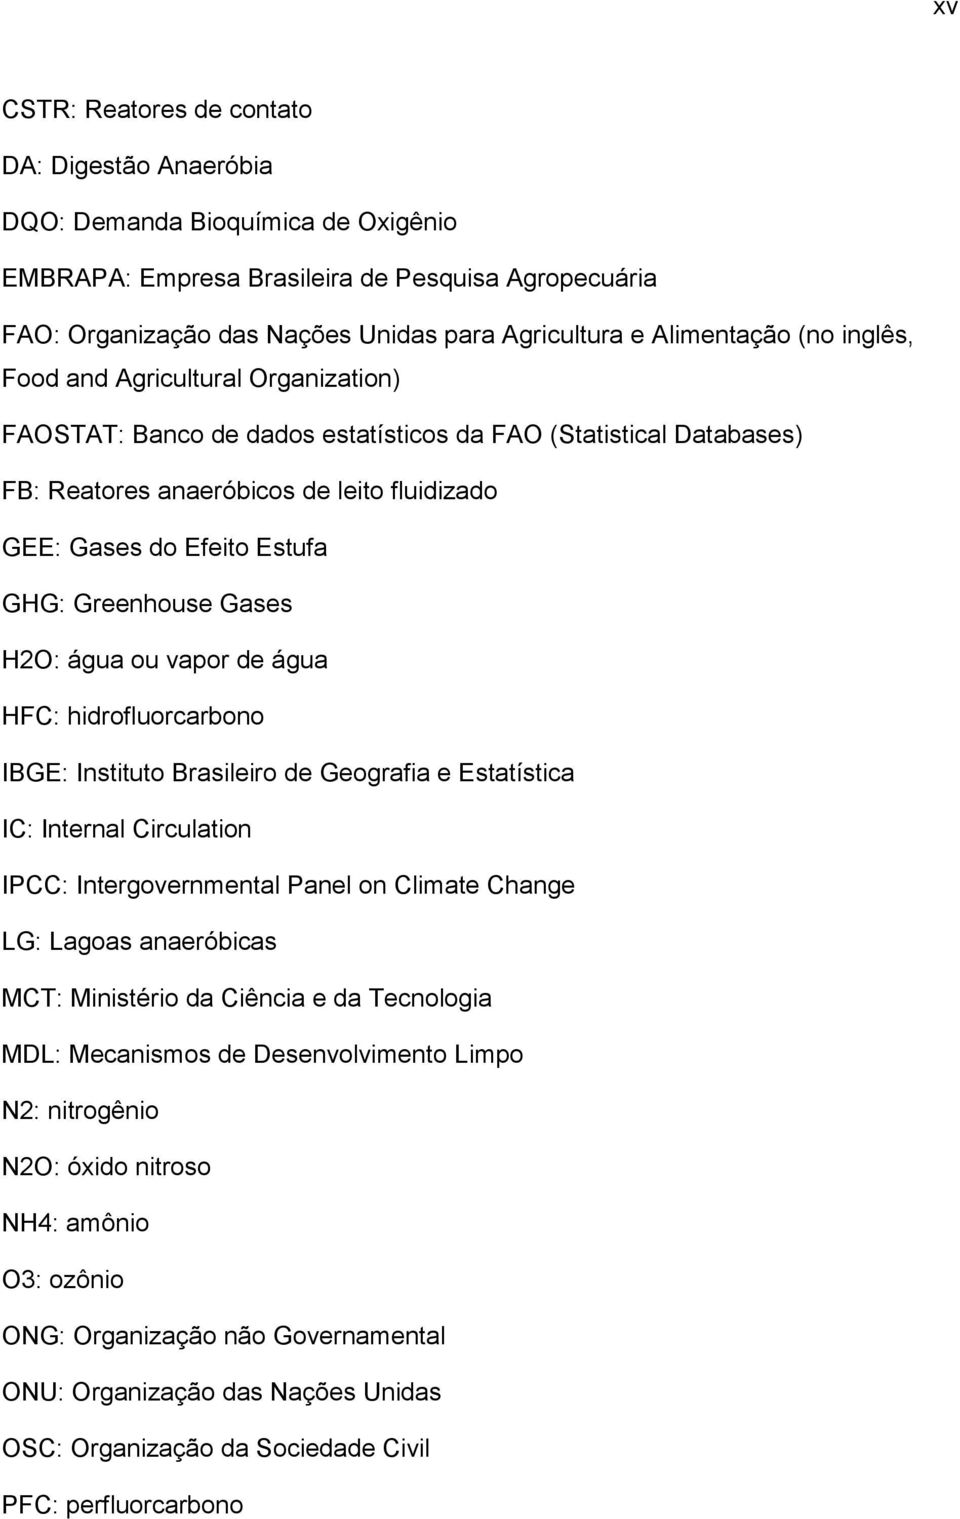 Estufa GHG: Greenhouse Gases H2O: água ou vapor de água HFC: hidrofluorcarbono IBGE: Instituto Brasileiro de Geografia e Estatística IC: Internal Circulation IPCC: Intergovernmental Panel on Climate